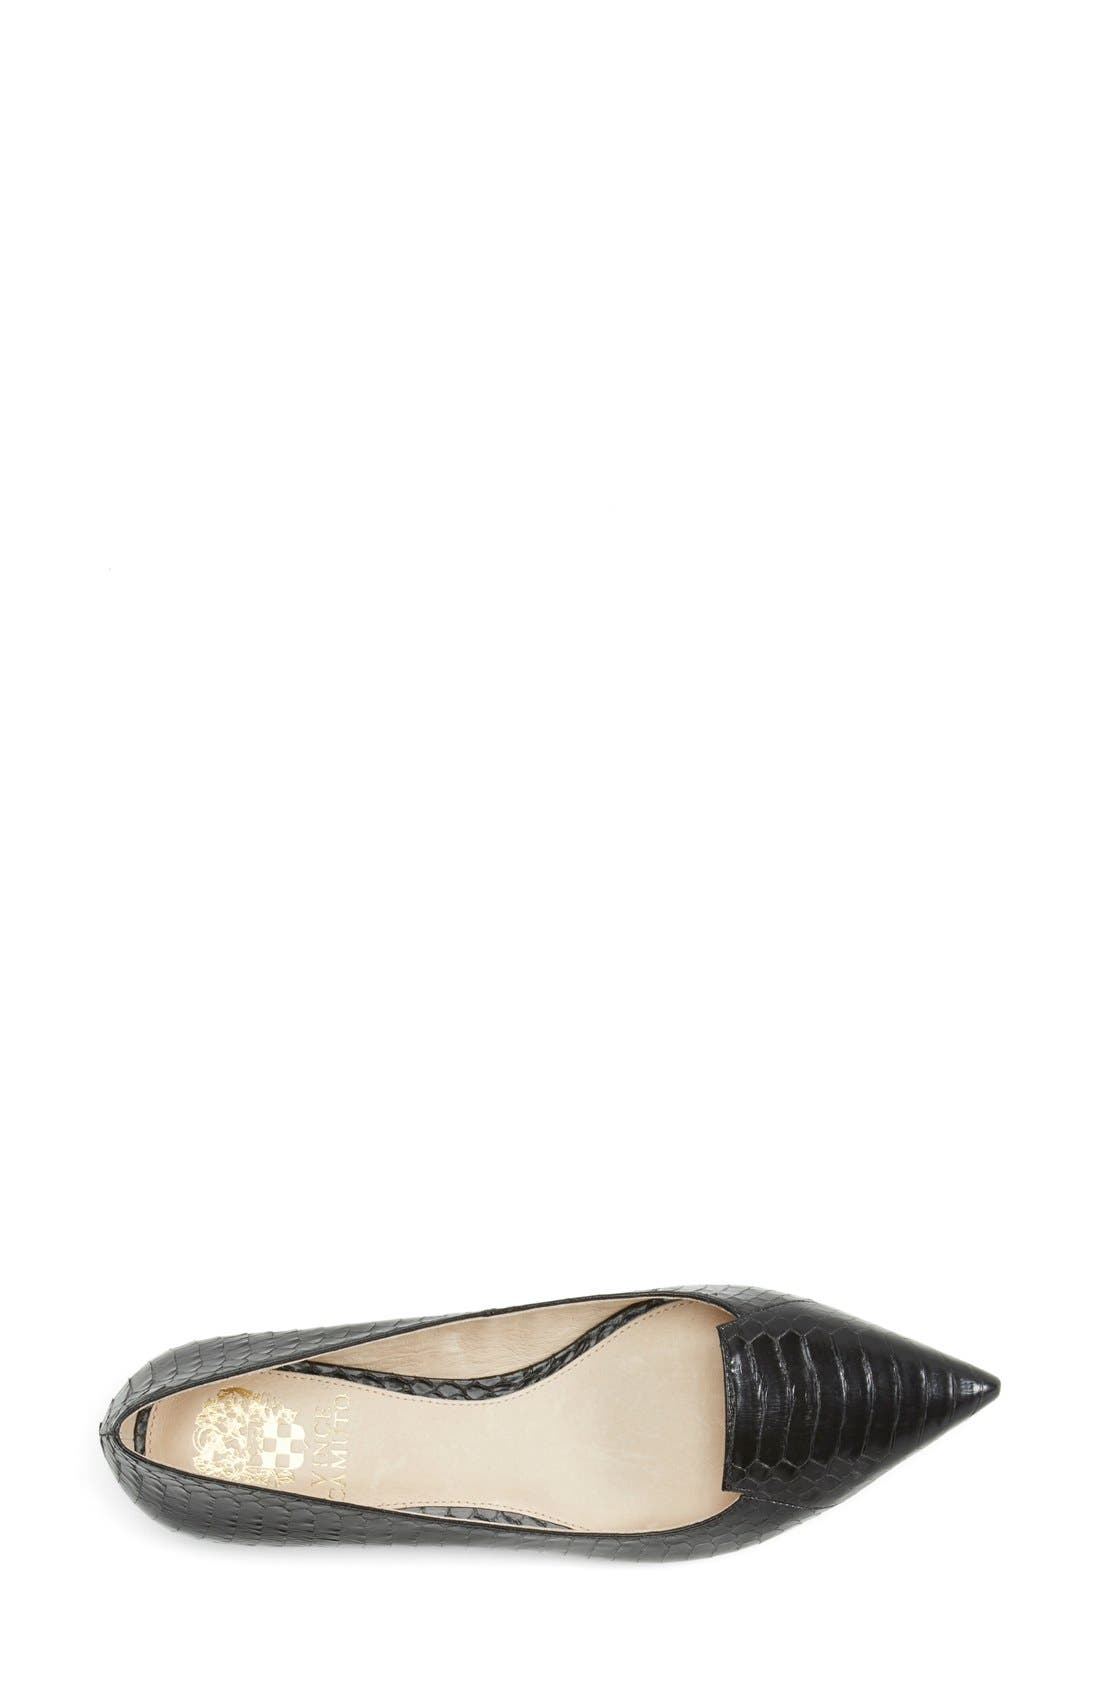 VINCE CAMUTO, 'Empa' Pointy Toe Loafer Flat, Alternate thumbnail 4, color, 001